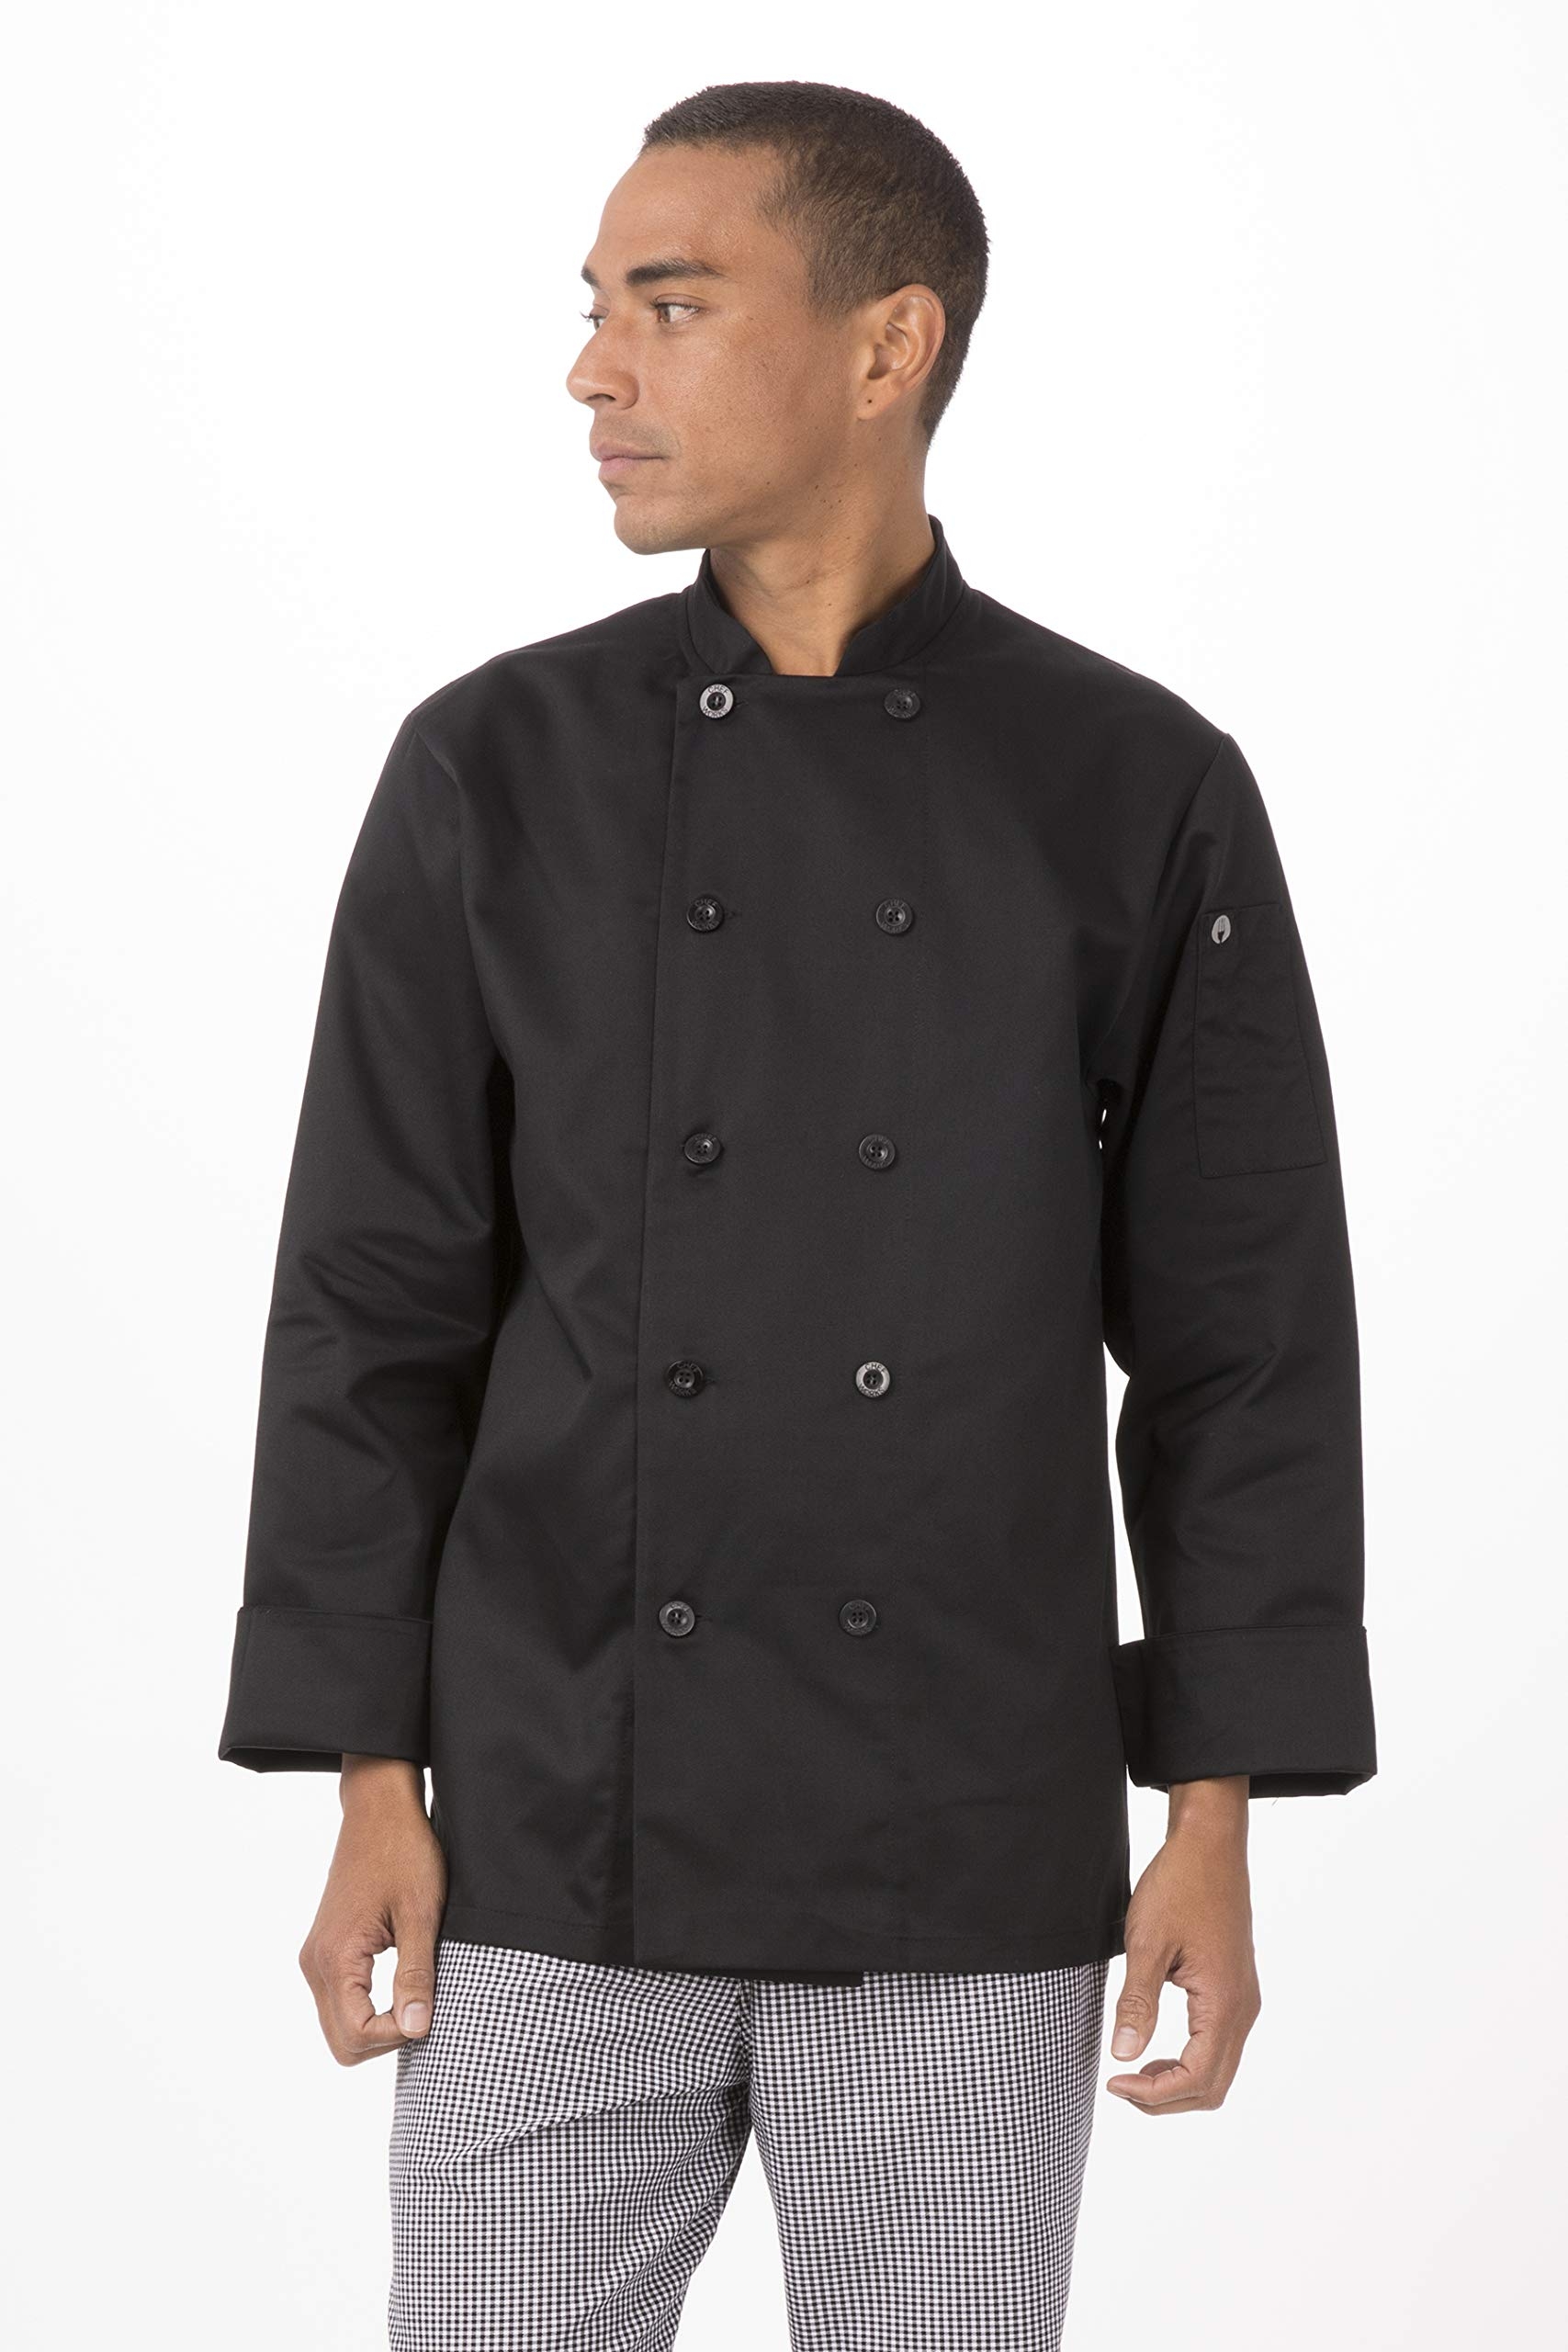 Chef Works Unisex-Adult's Bastille Chef Coat, Black, 6XL by Chef Works